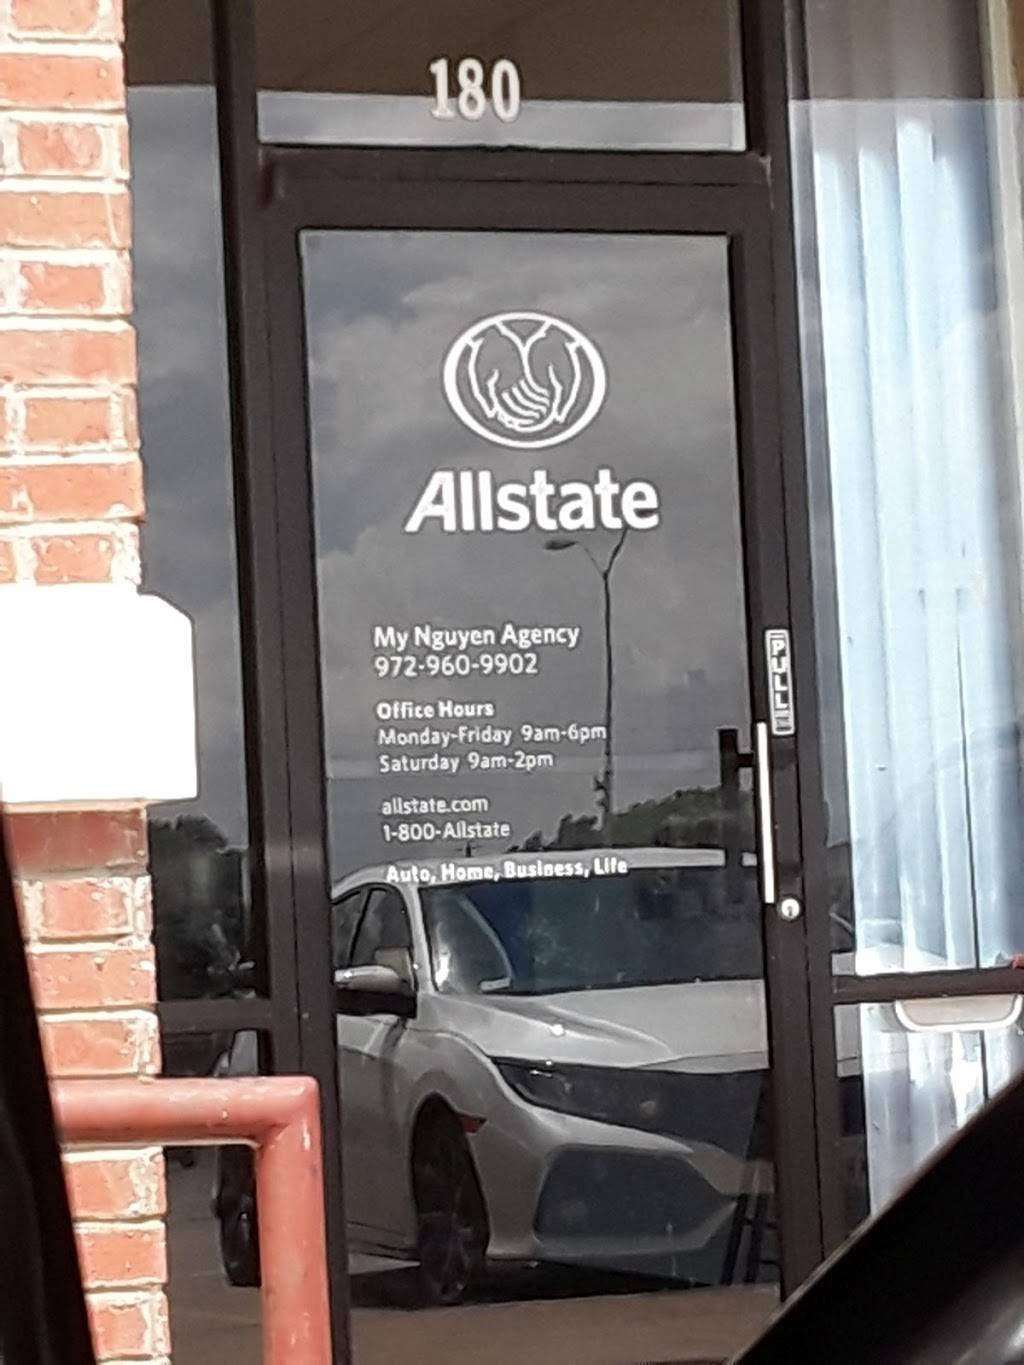 My Nguyen: Allstate Insurance - insurance agency  | Photo 1 of 2 | Address: 9780 Walnut St Ste 180, Dallas, TX 75243, USA | Phone: (972) 960-9902